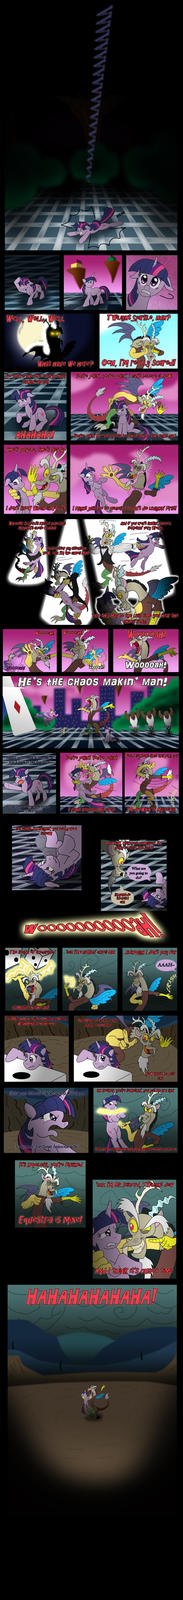 mr__discord__s_song_by_unoservix-d4kk3ly.jpg